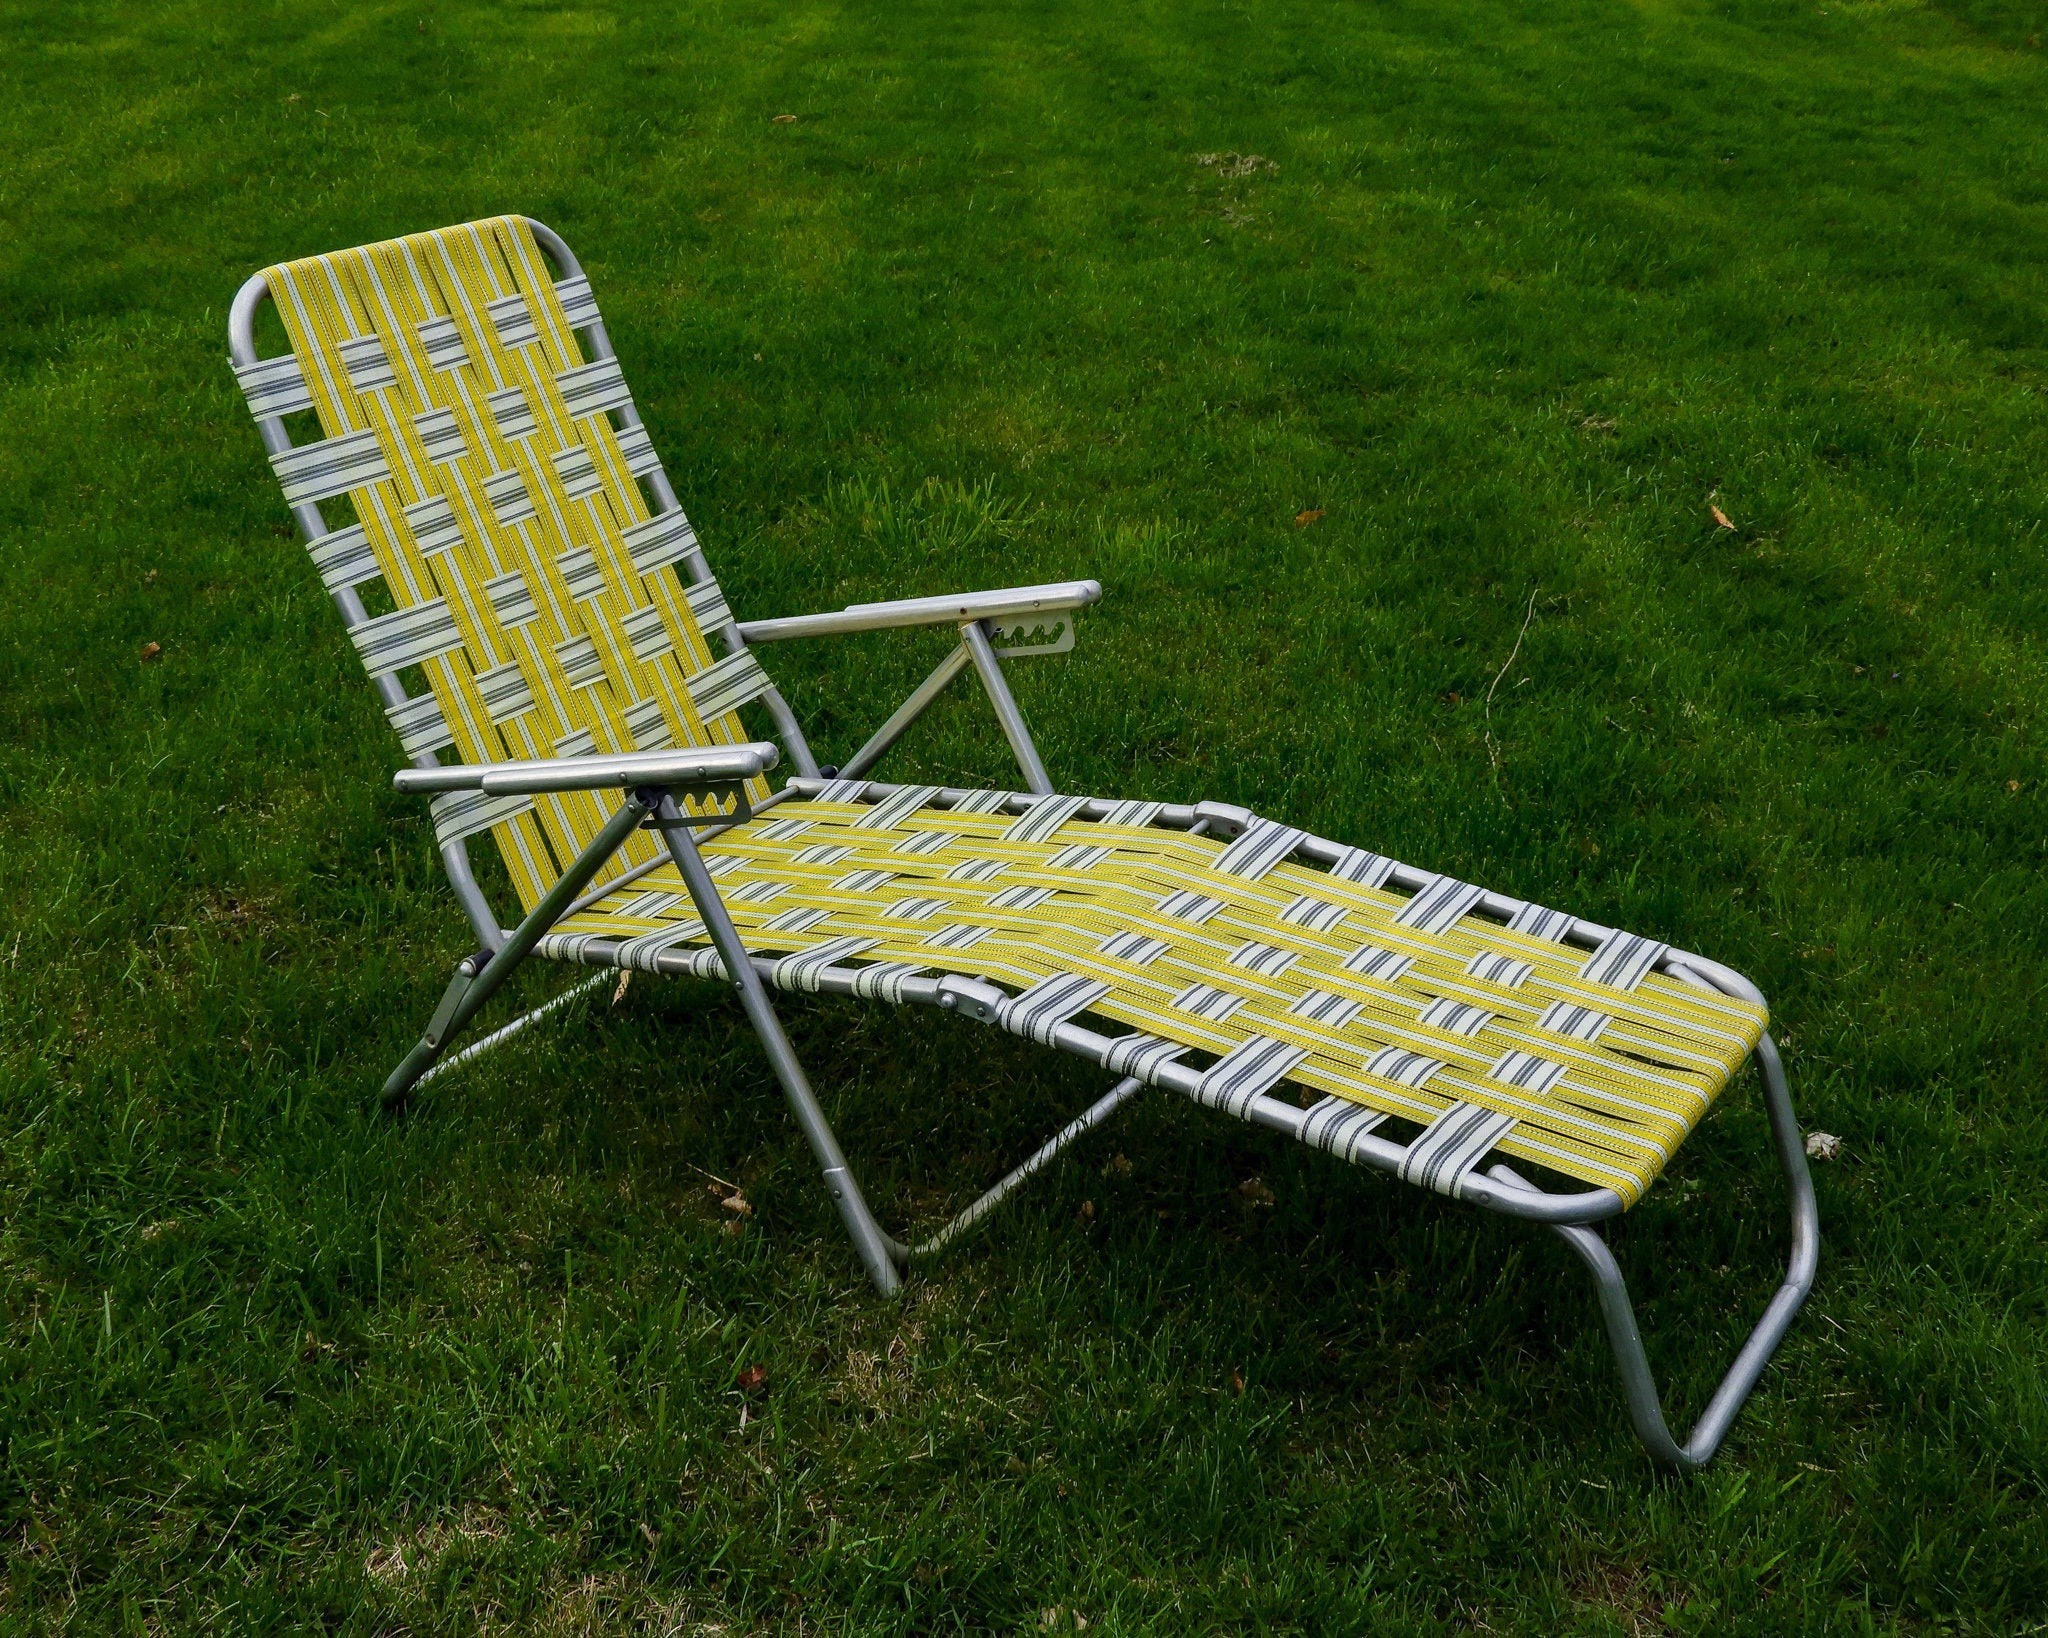 Vintage Chaise Lounge Lawn Chair Adjustable Recliner Patio Furniture Webbed Seat Yellow White Folding Aluminum Industrial Decor